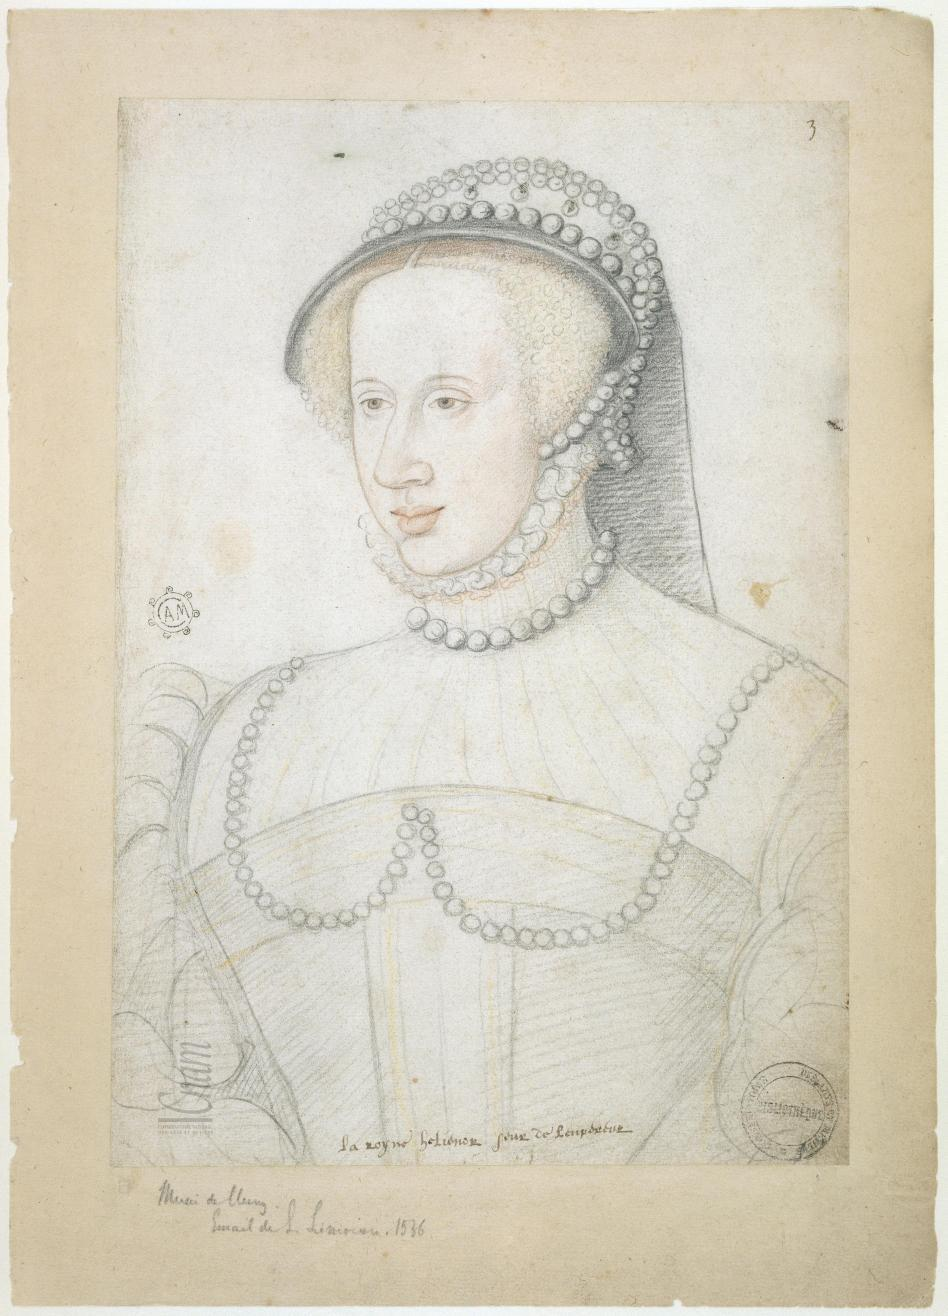 1536 - Eleonore de Habsbourg, Queen of France - from Le